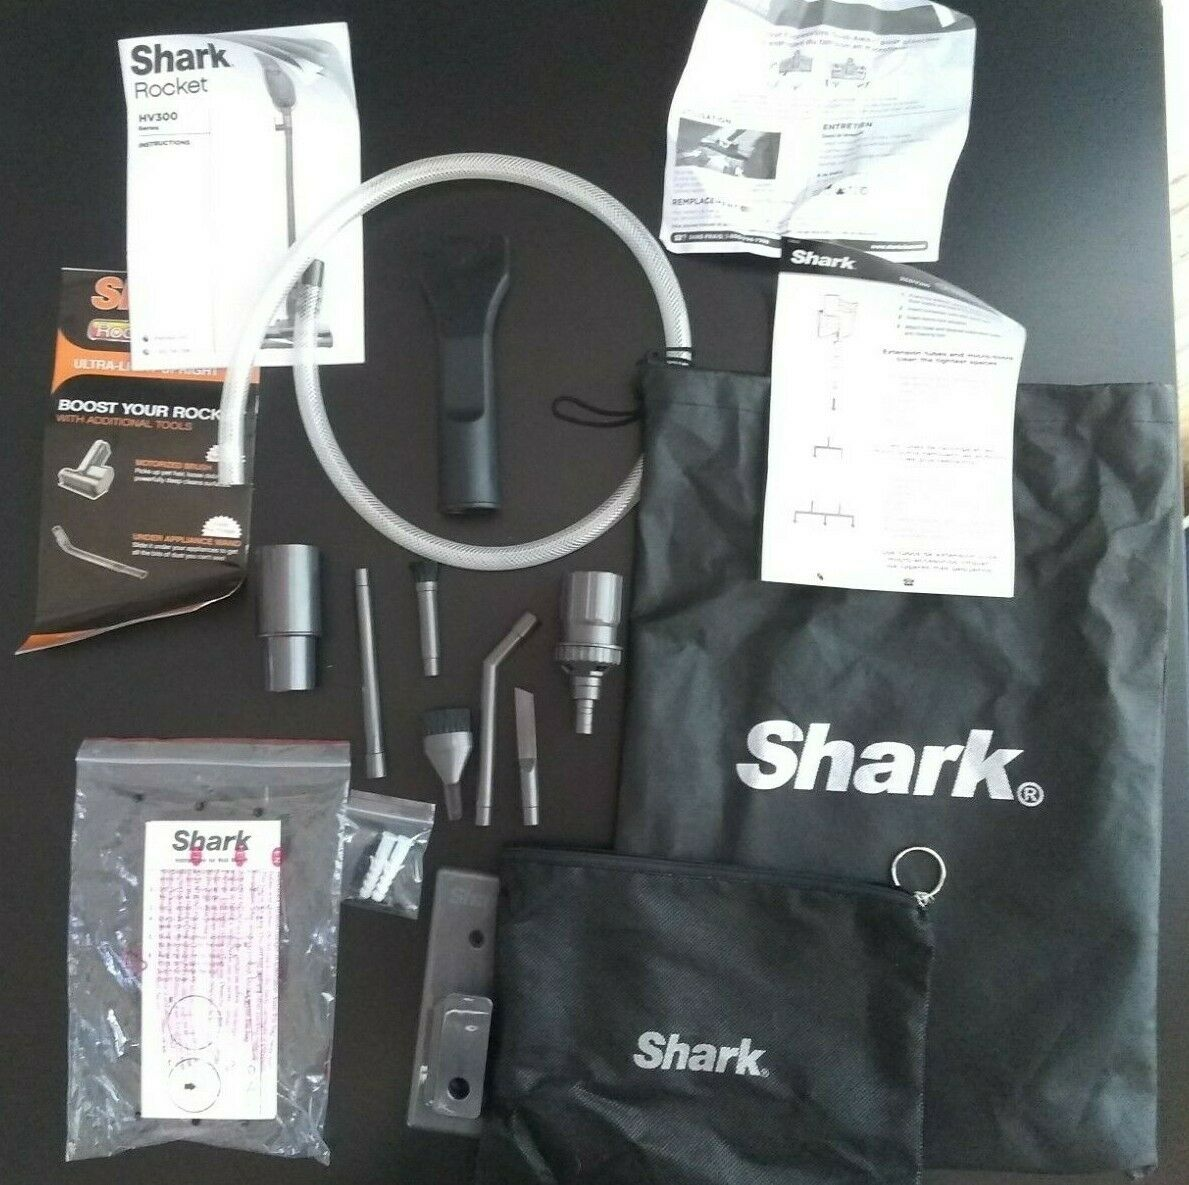 Shark Rocket HV300 Parts Accessories Car Detail Kit Wall Mount Manuals XCDV300